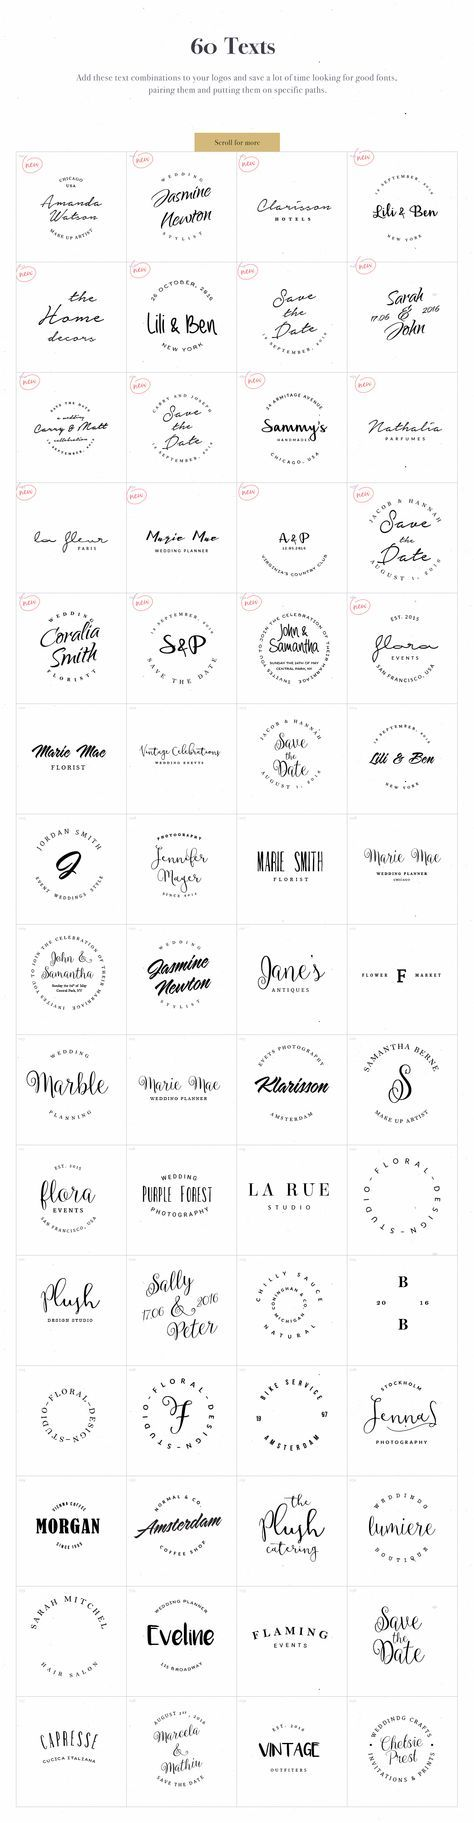 "Logo Design Kit by VladCristea on <a href=""/creativemarket/"" title=""Creative Market"">@Creative Market</a>"